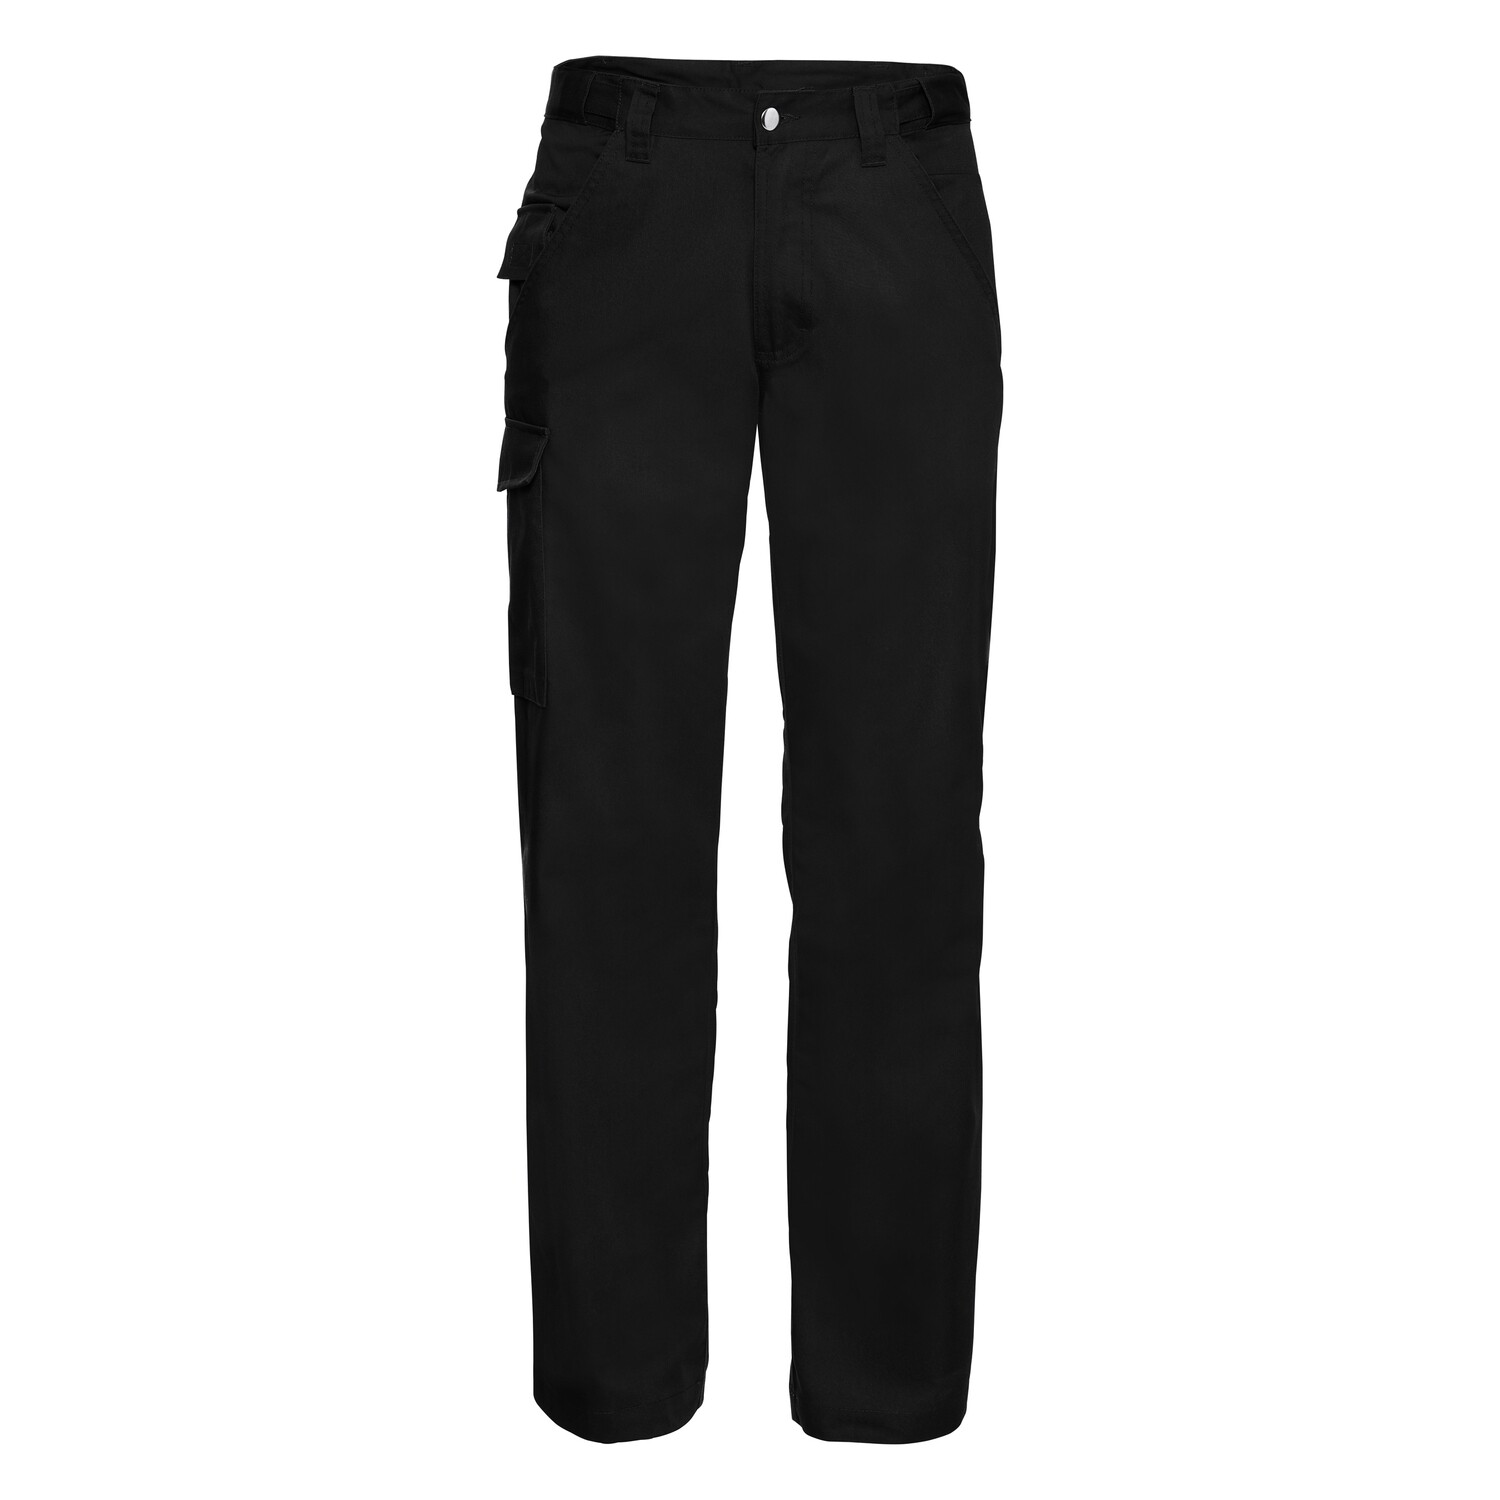 J001M Russell Polycotton twill workwear trousers